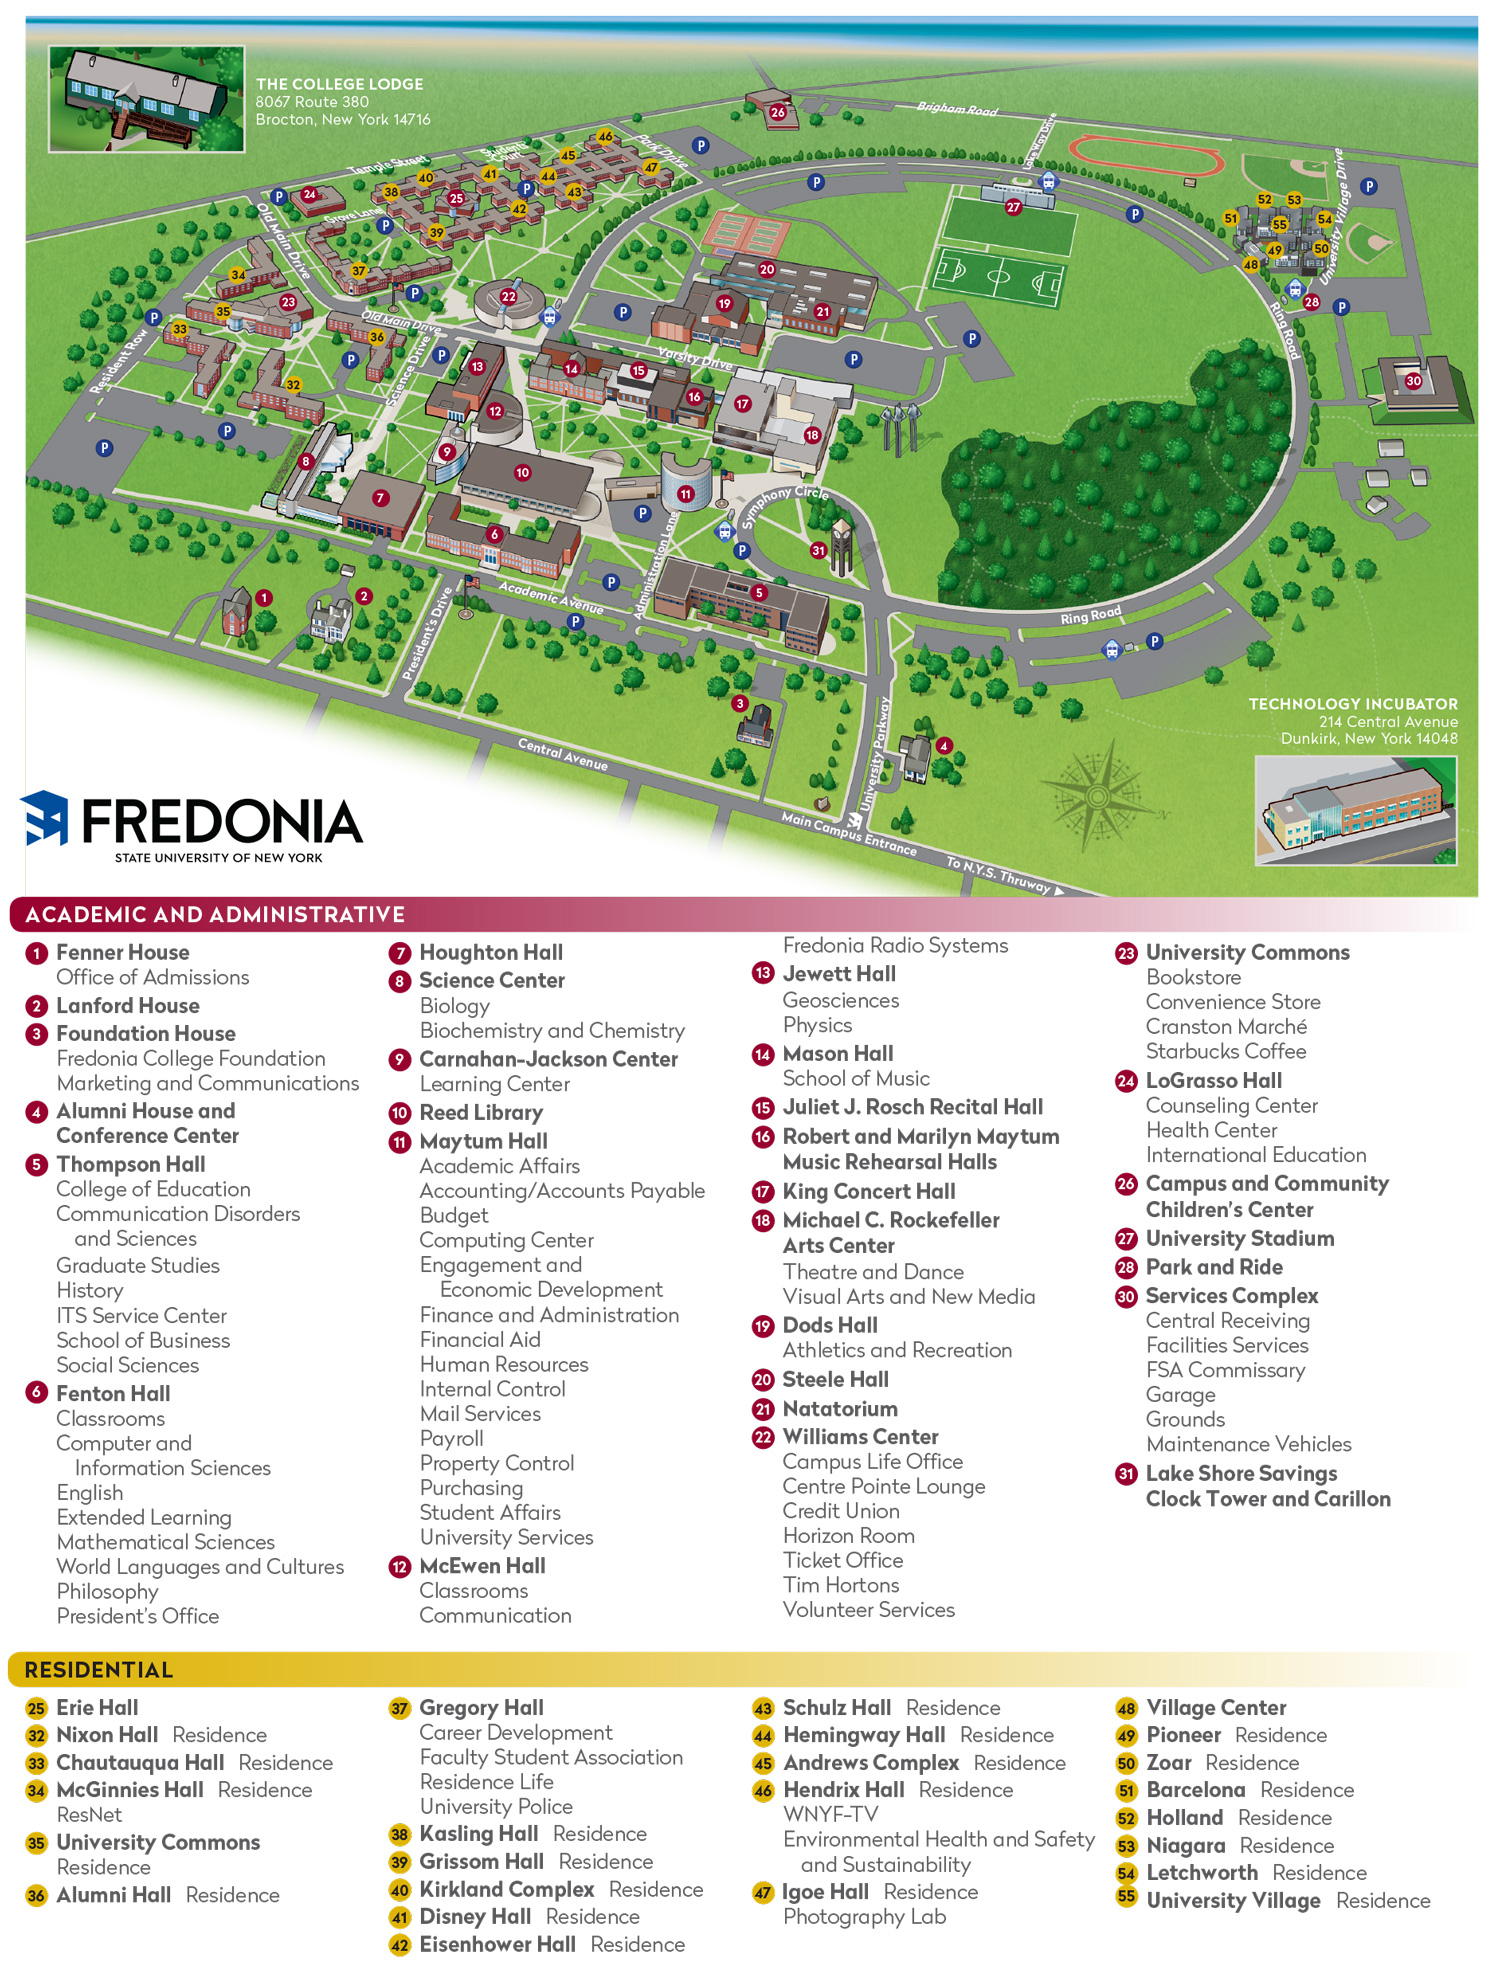 State University of New York at Fredonia campus map